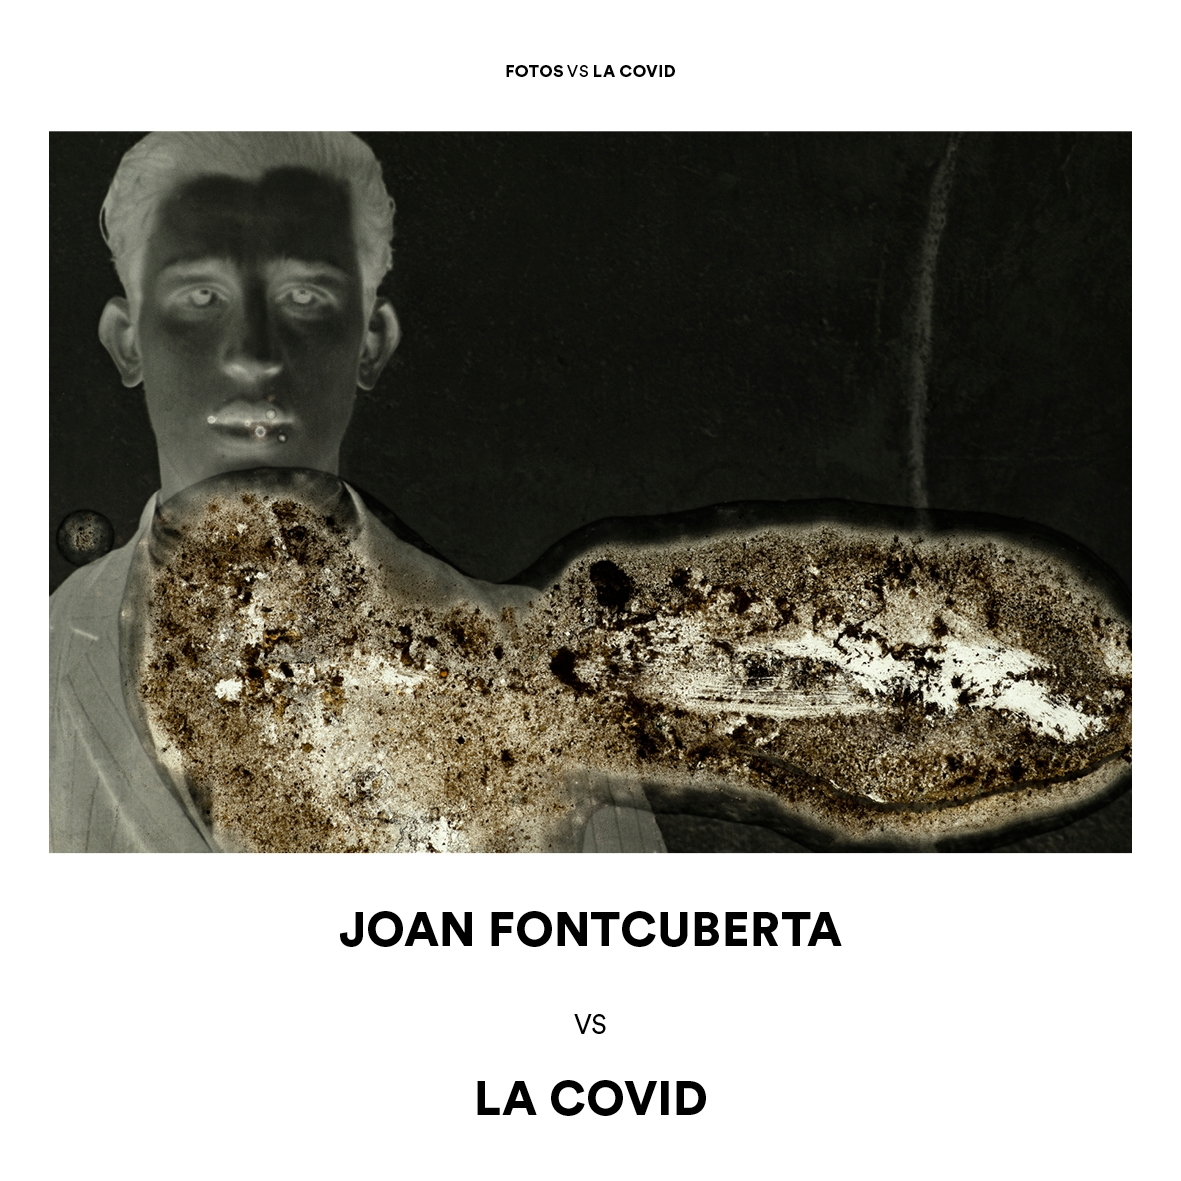 Joan Fontcuberta POST